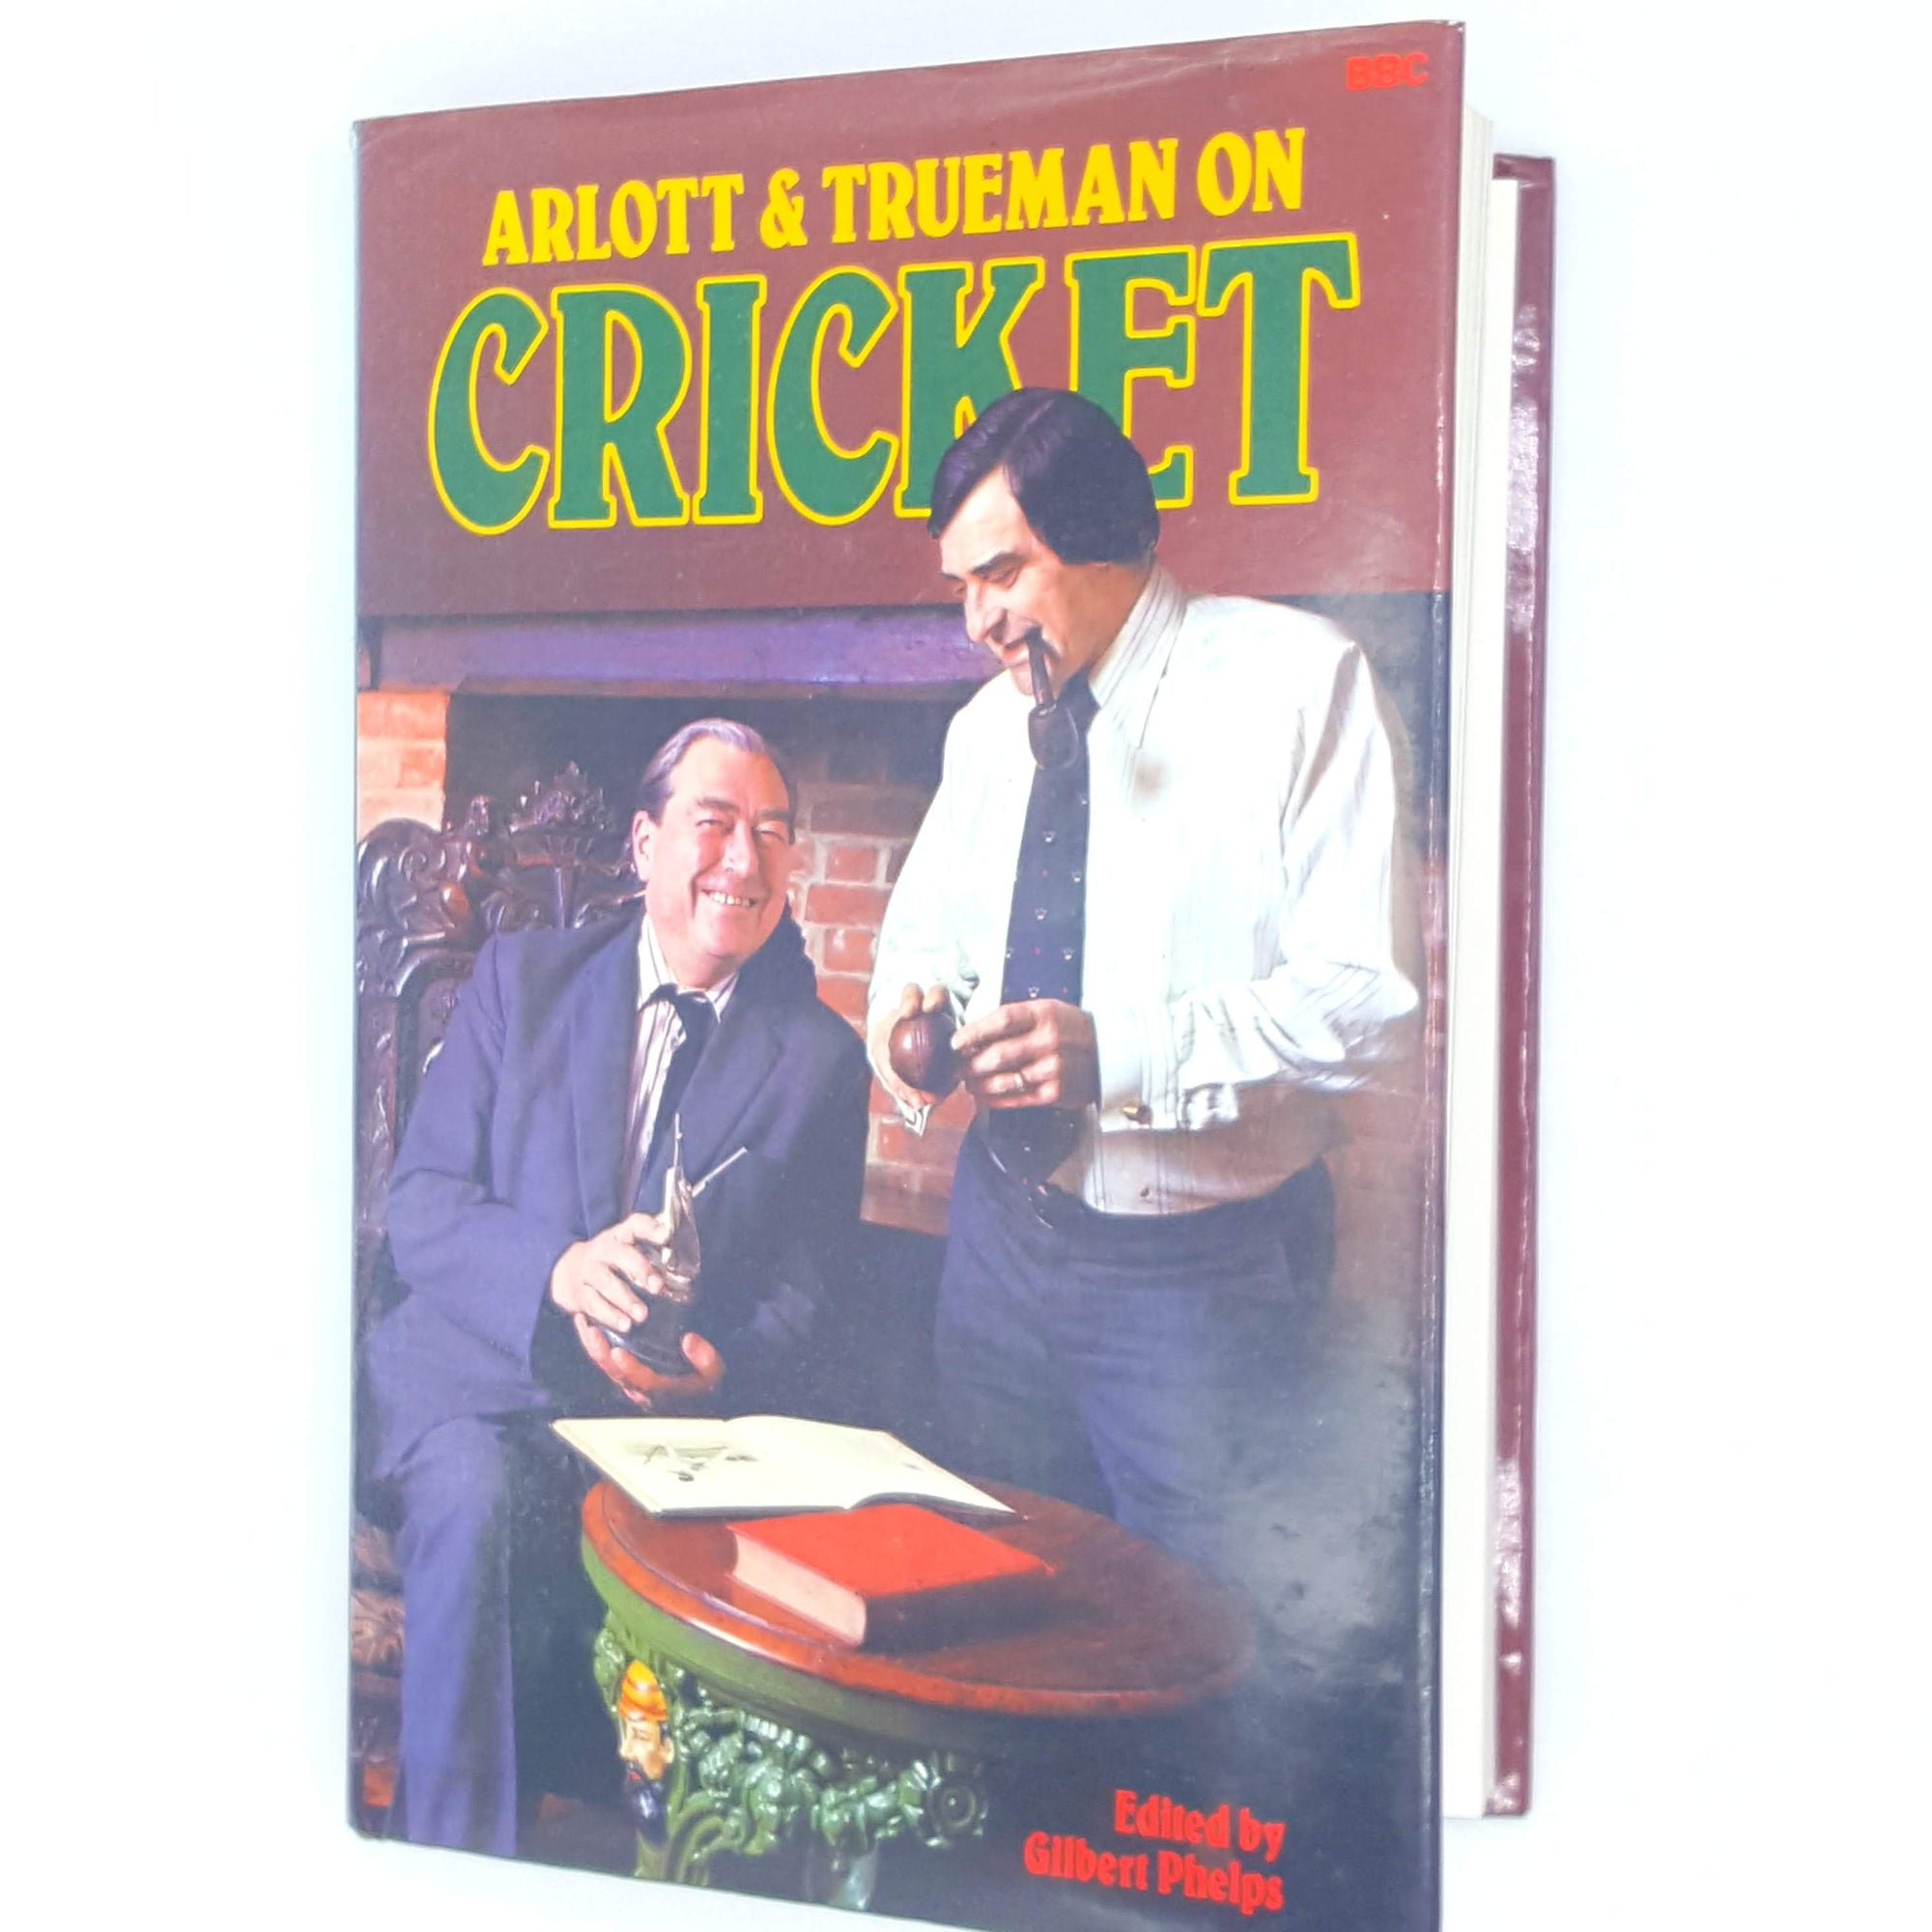 Arlott & Trueman on Cricket edited by Gilbert Phelps 1977